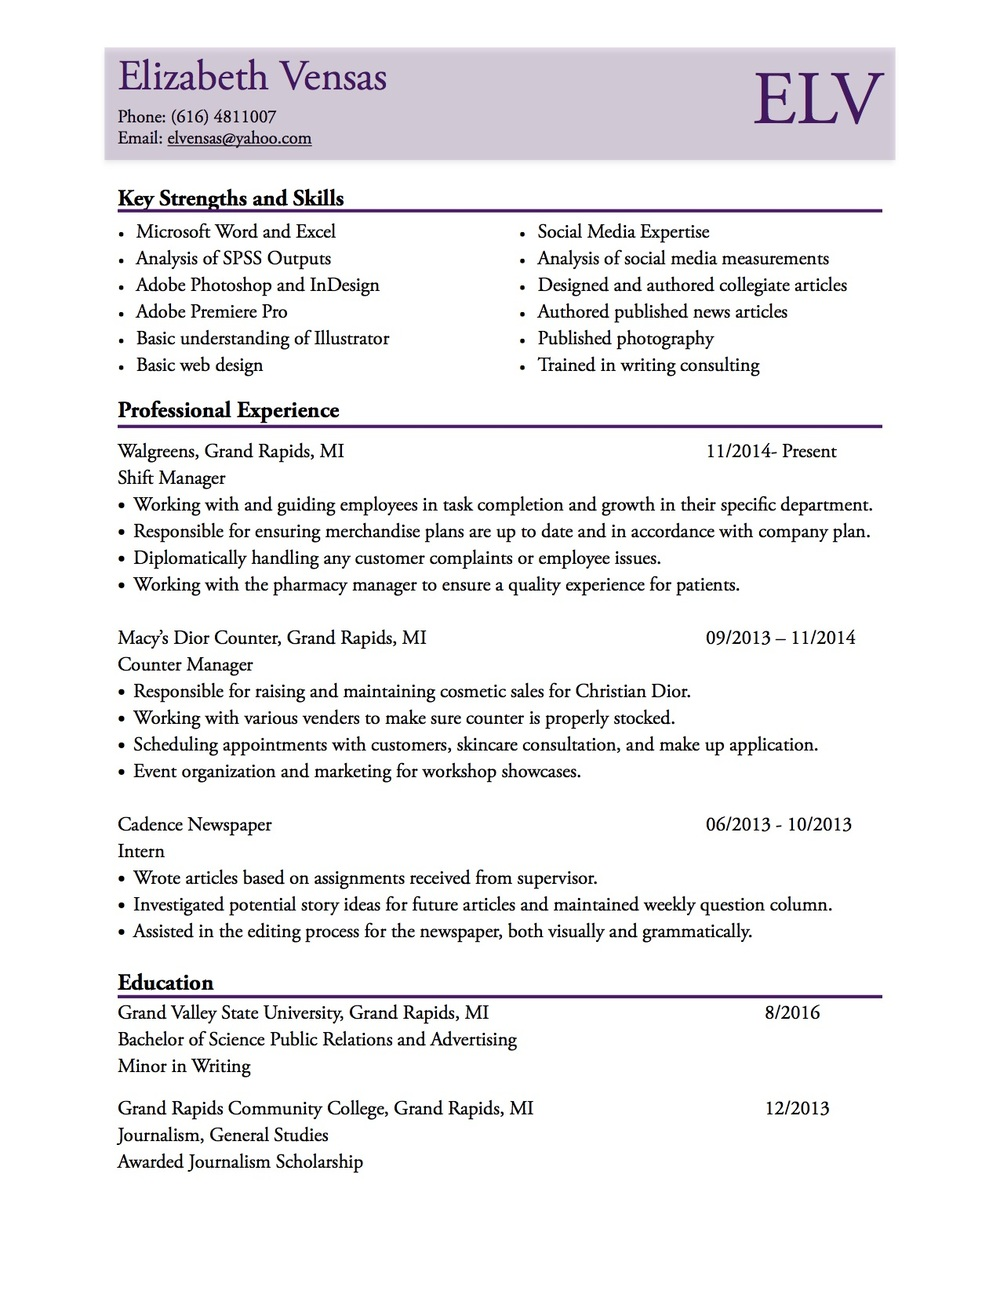 resume elizabeth vensas references available upon request